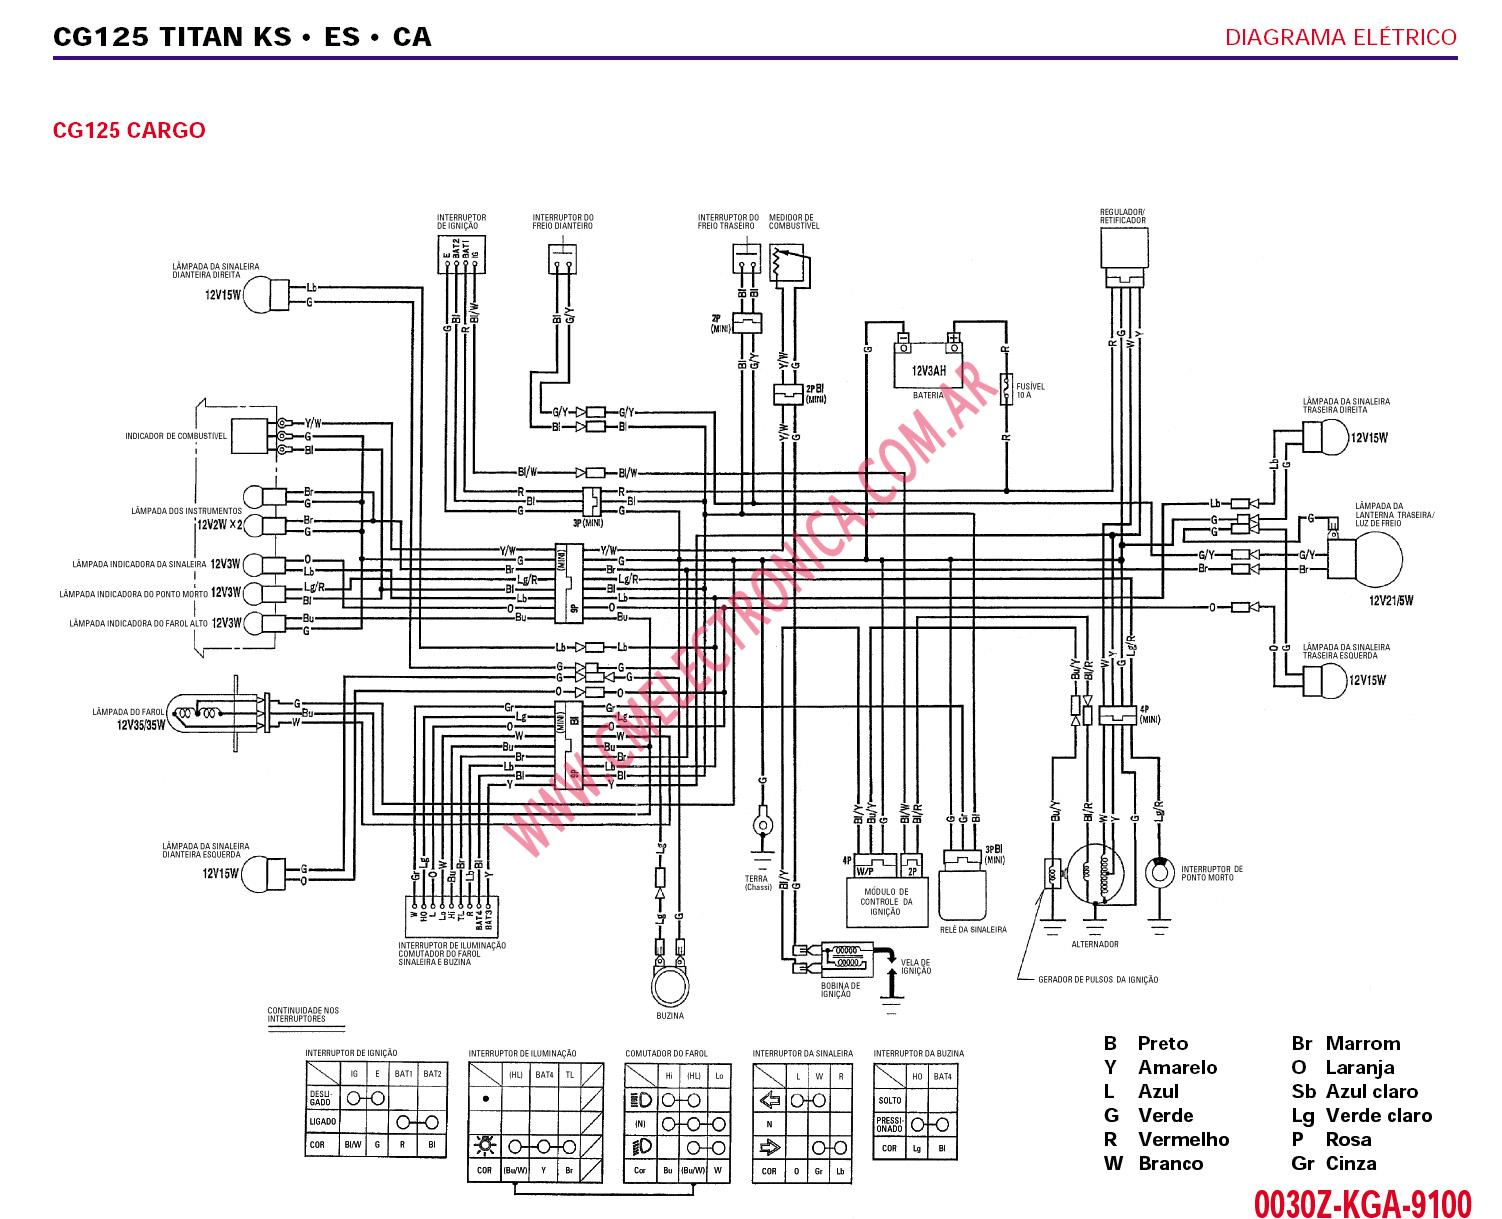 Honda Cg 125 Cdi Wiring Diagram from www.cmelectronica.com.ar